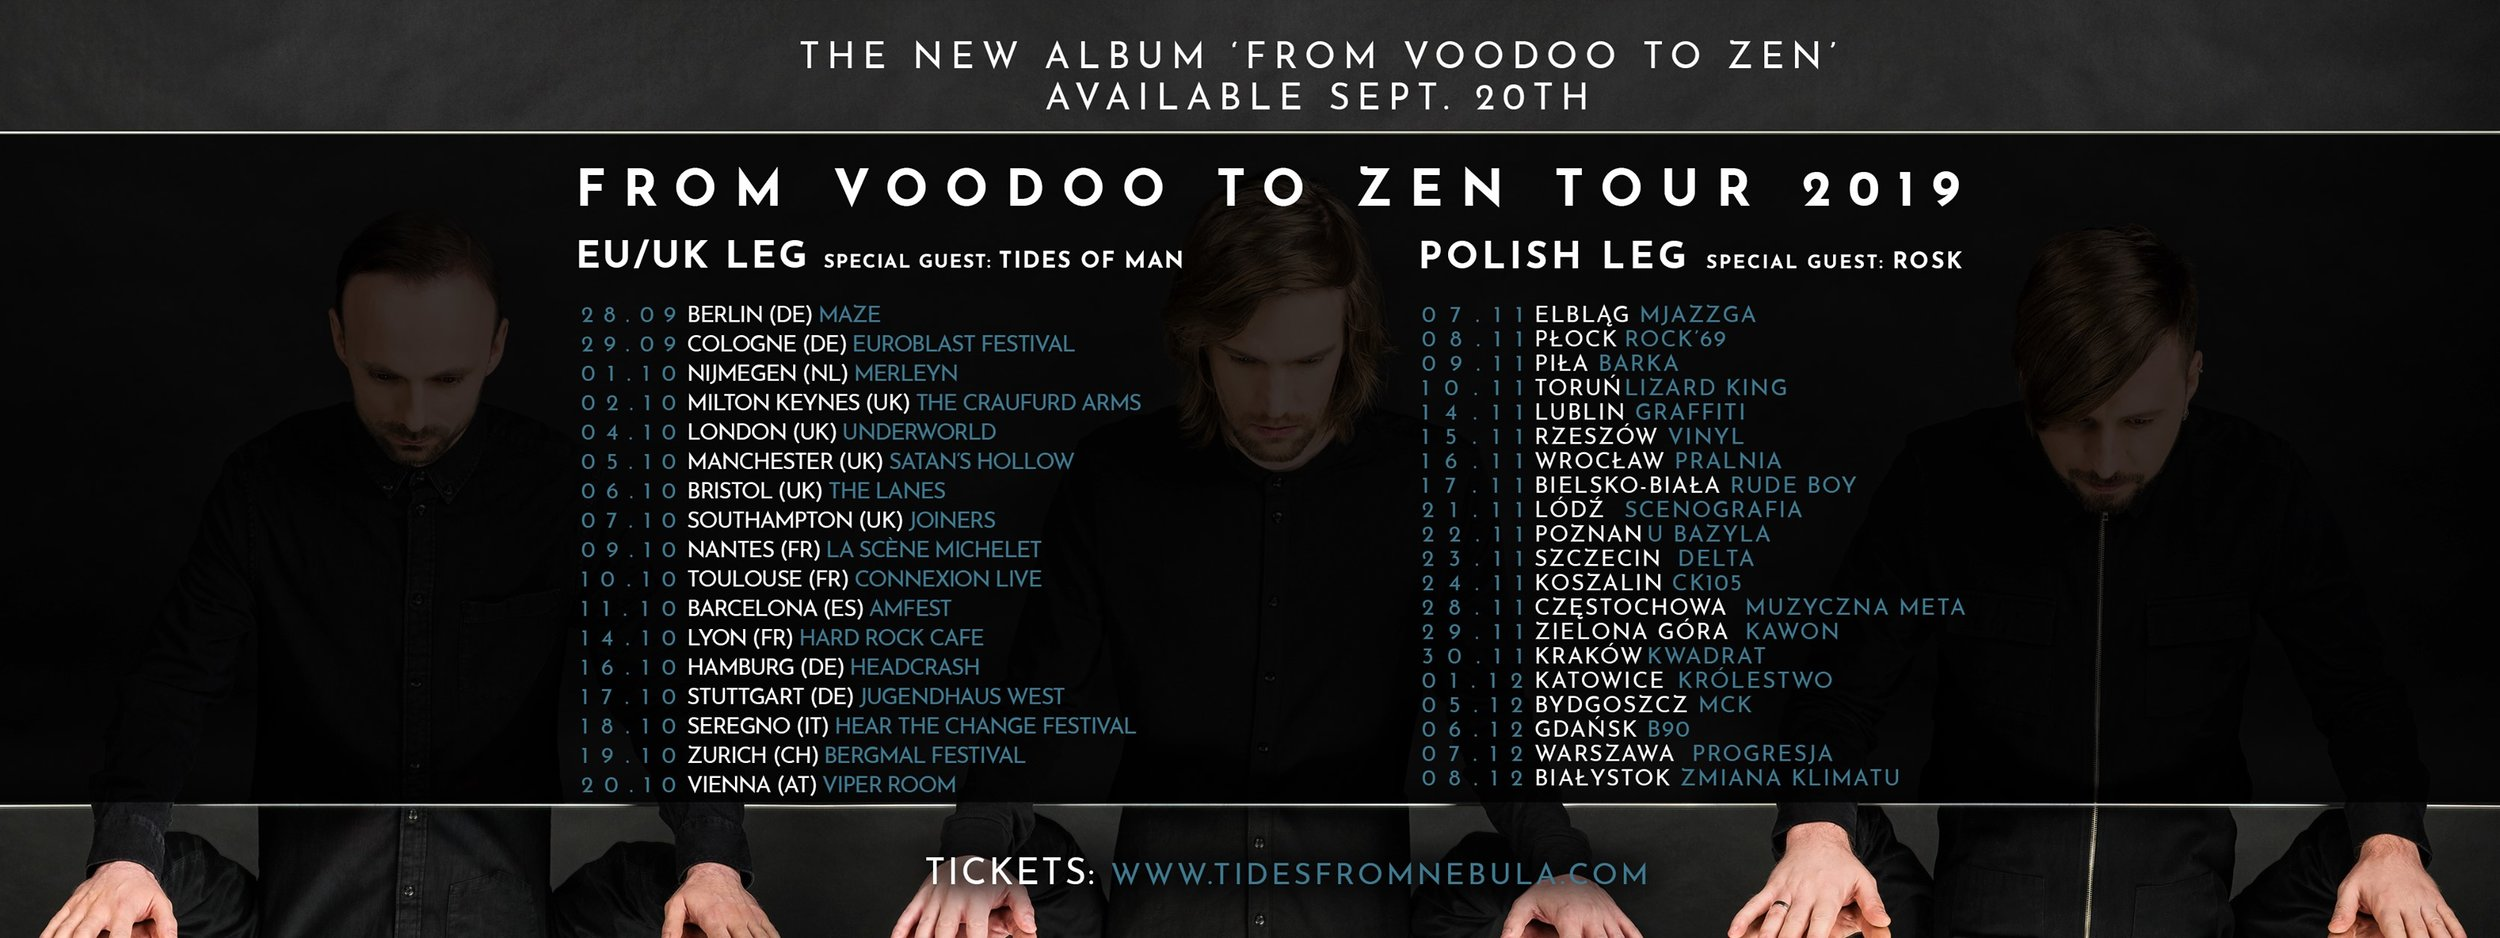 Tides From The Nebula Tour Dates 2019.jpg